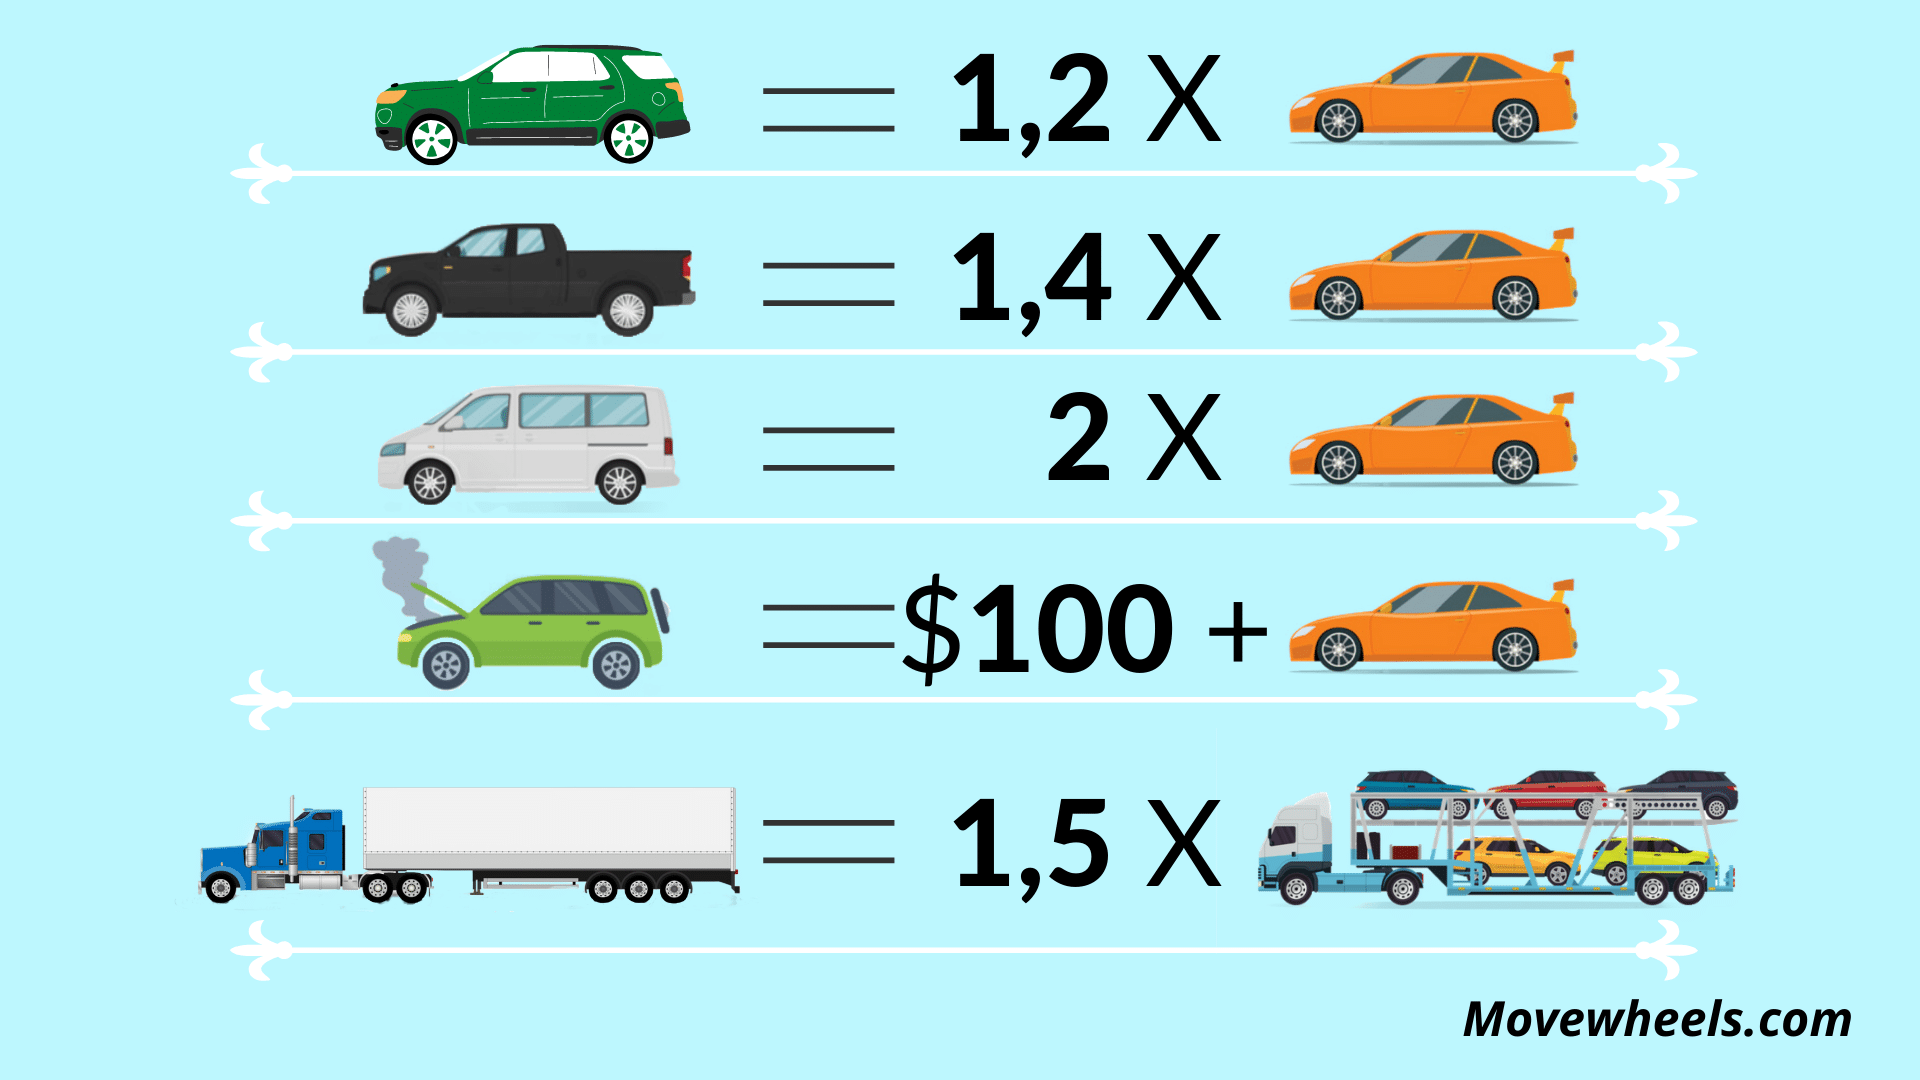 how much doea it cost to ship a car to Kansas